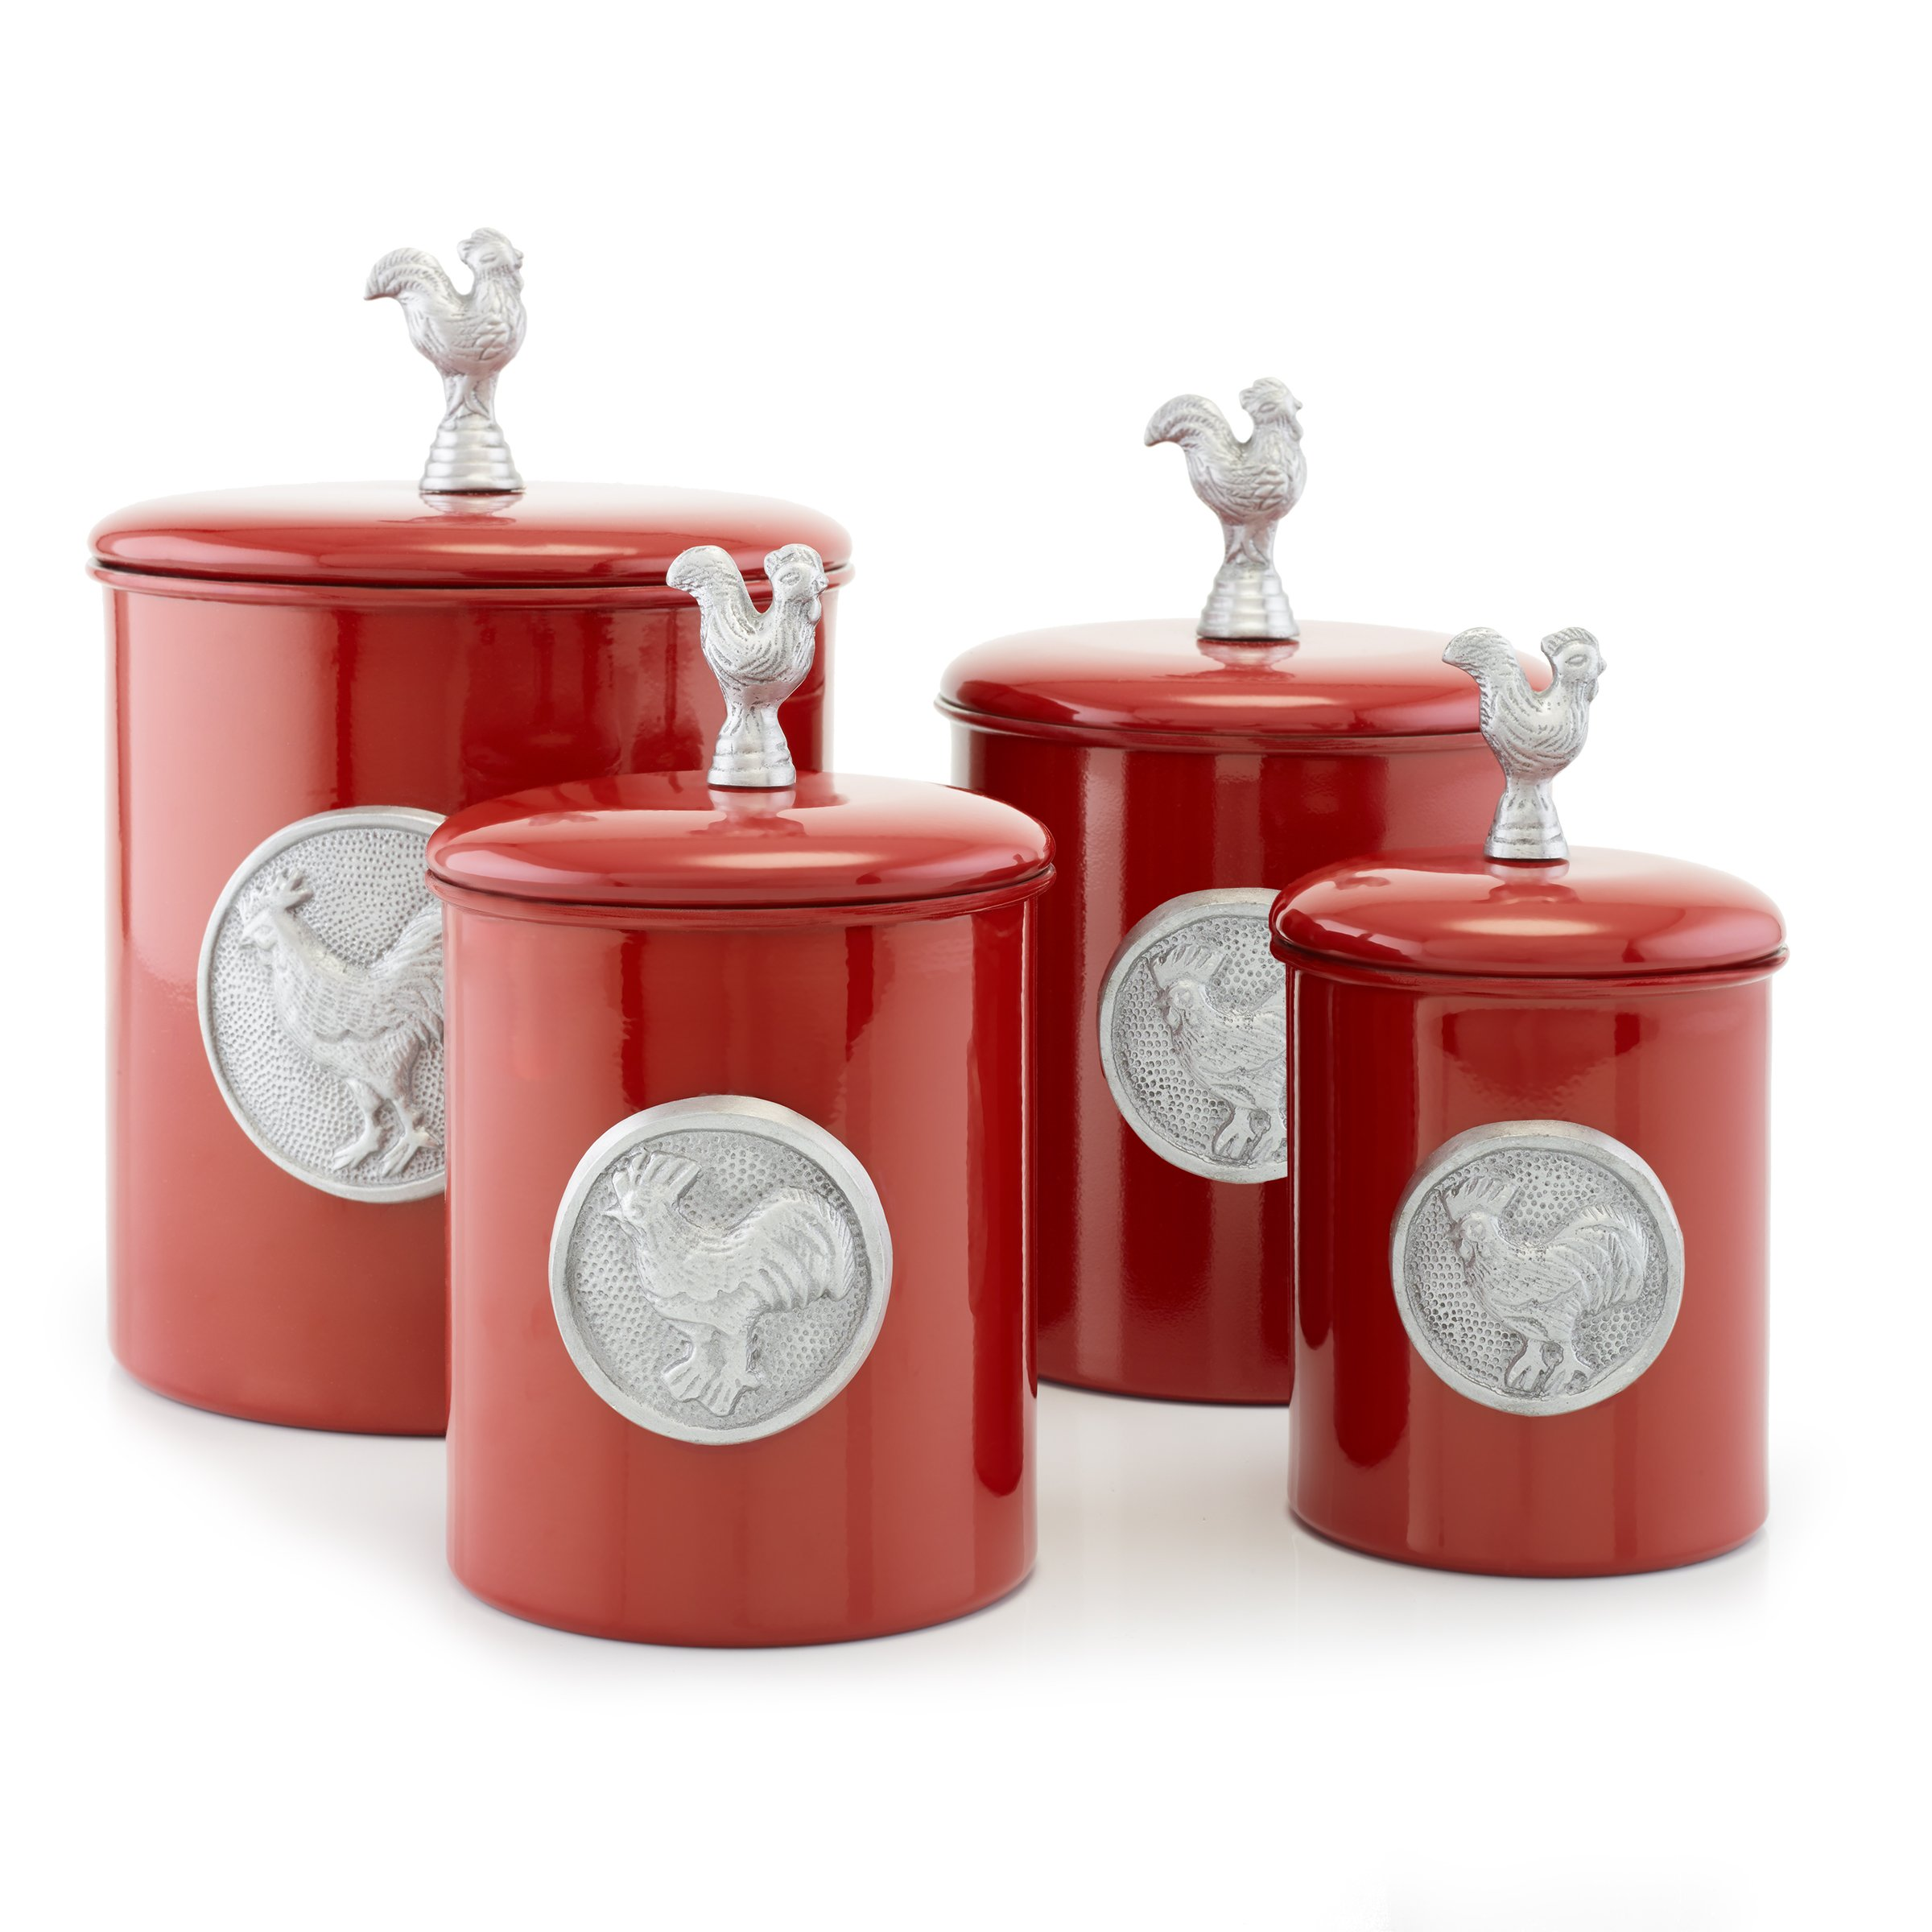 Old Dutch 1743 4 Piece Rooster Canister Set, Red by Old Dutch